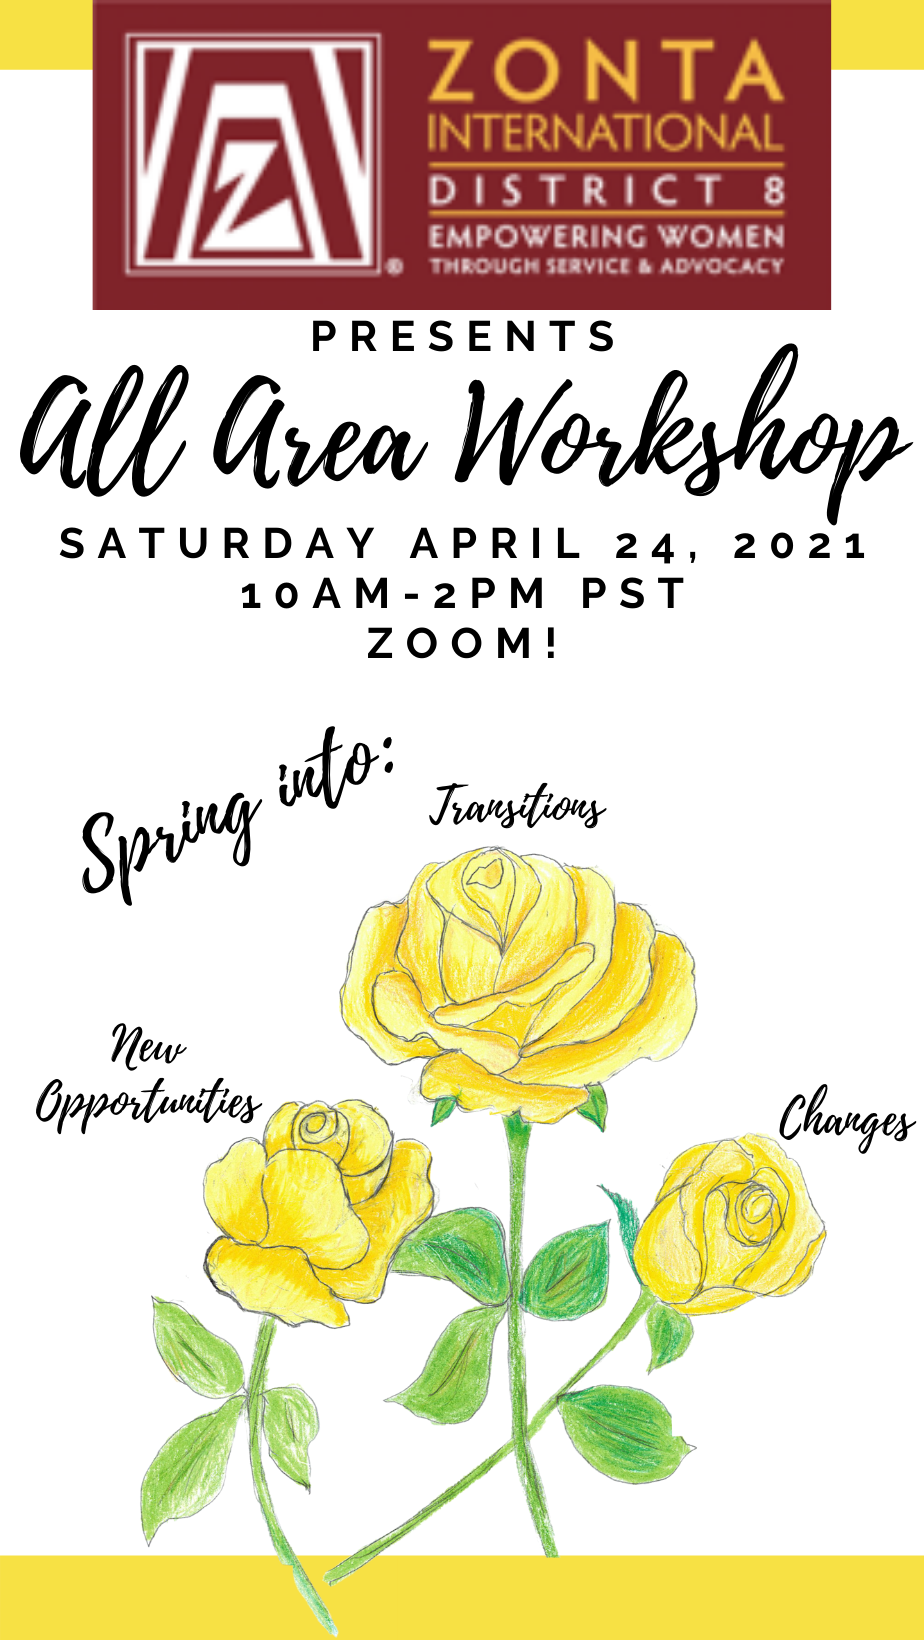 All Area Workshop flier